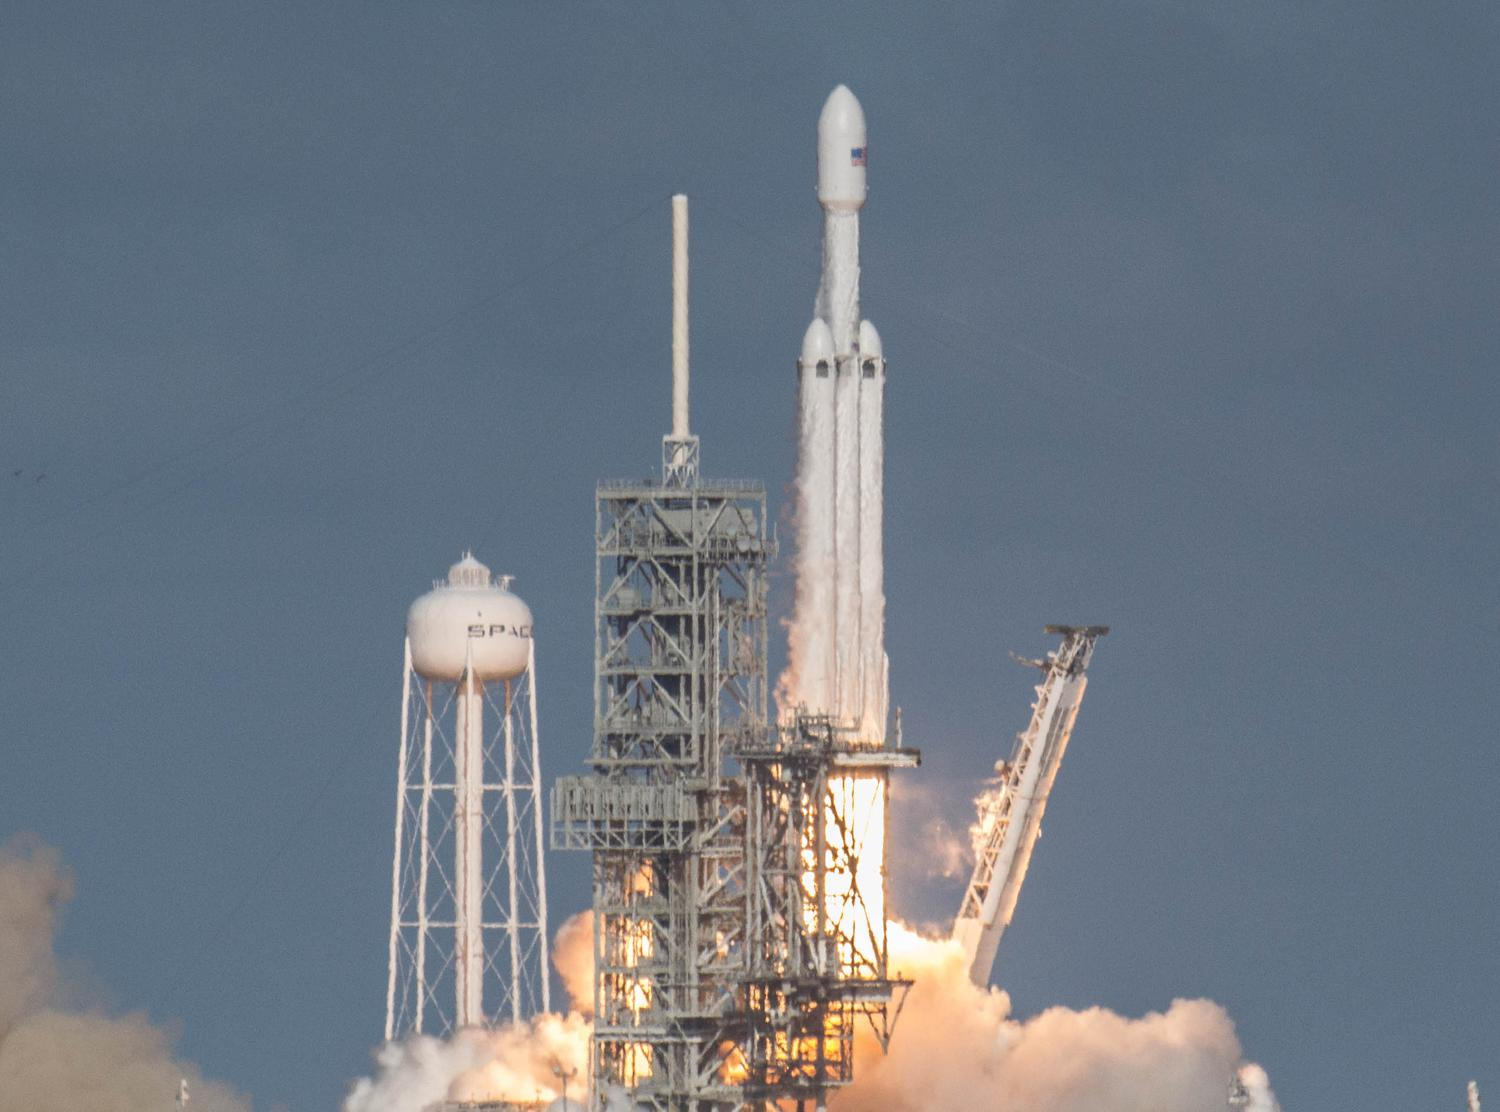 spacex falcon heavy launch today - HD2542×1886